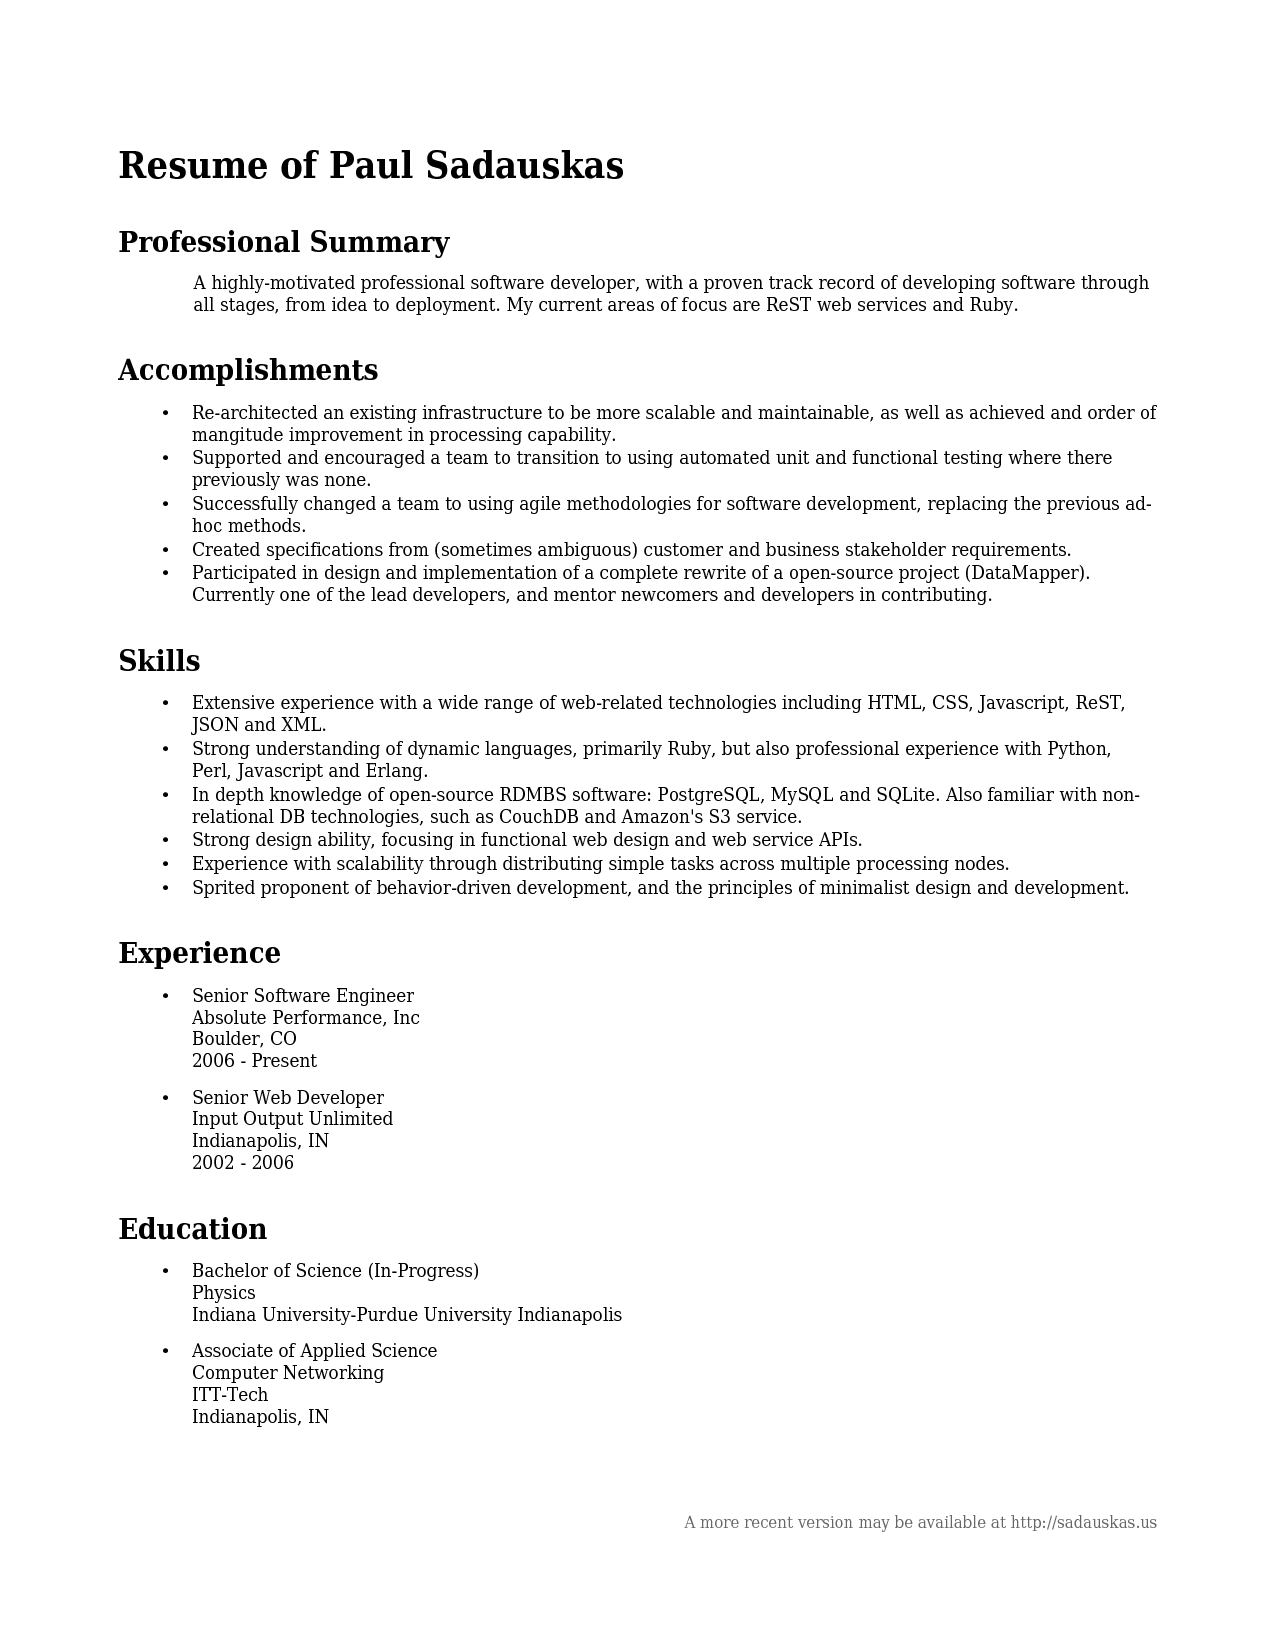 what is a professional summary on a resume